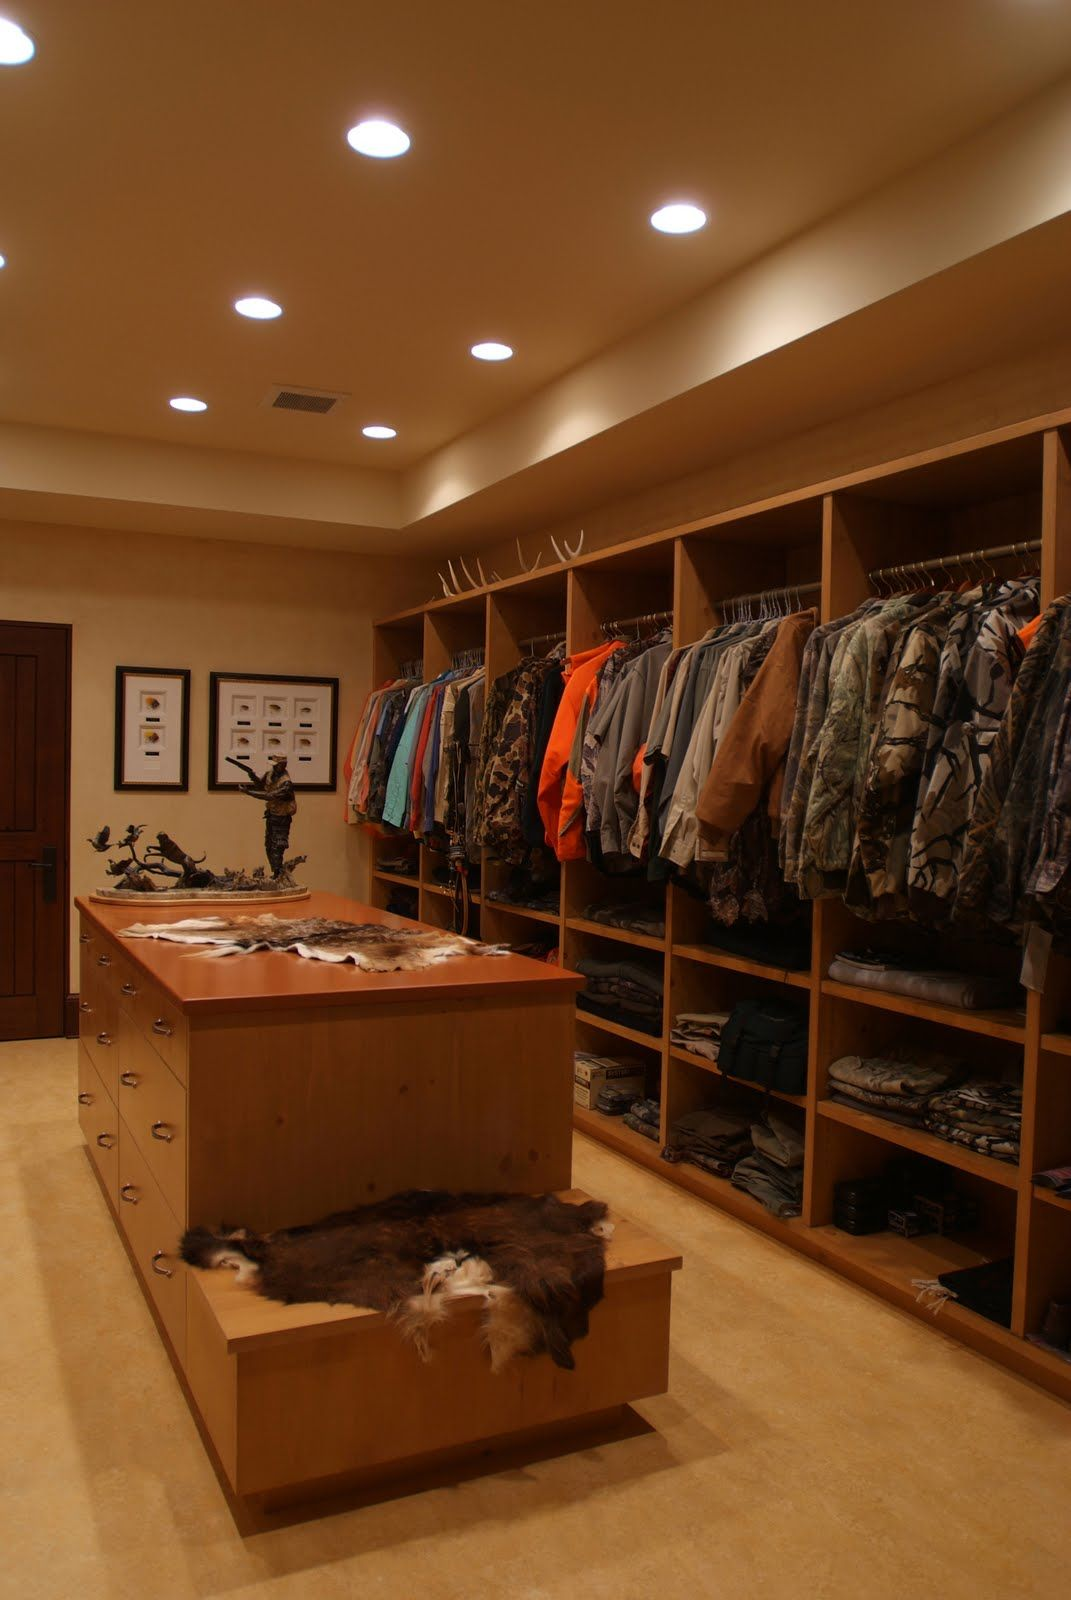 WOW Wouldnt This Be Niceif You Have Hunters Would The Way To Go AWESOME And ORGANIZEDlove It